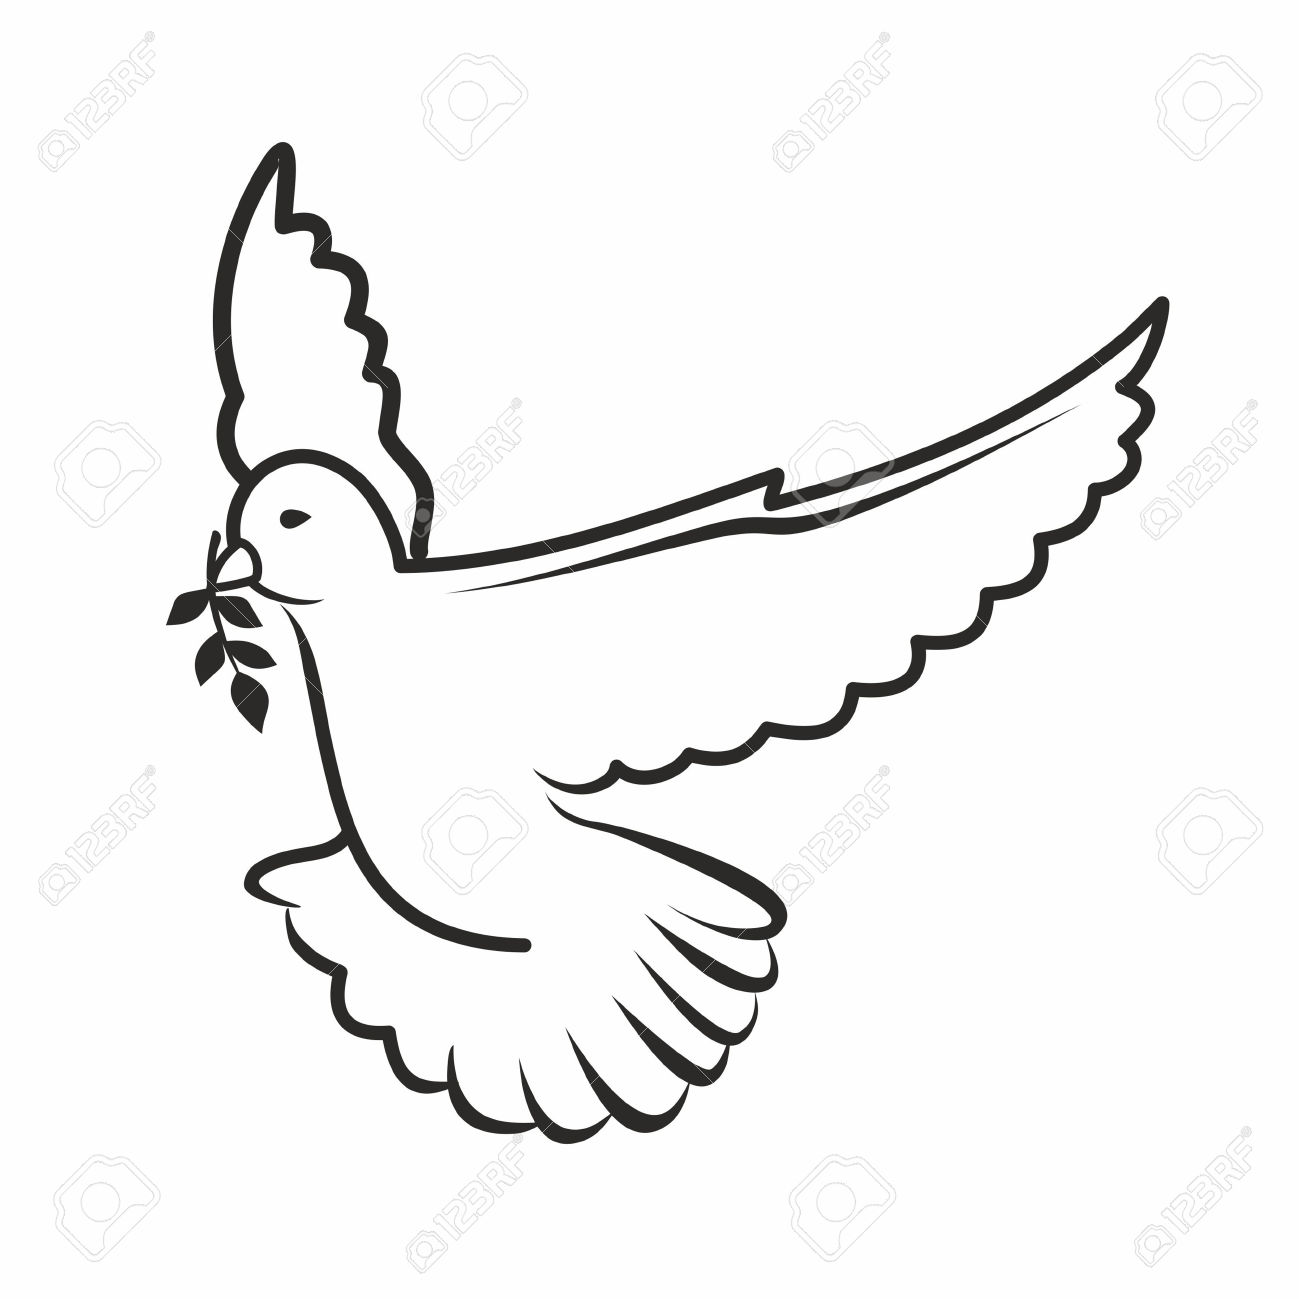 Black Outline Of A Dove Royalty Free Cliparts Vectors And Stock